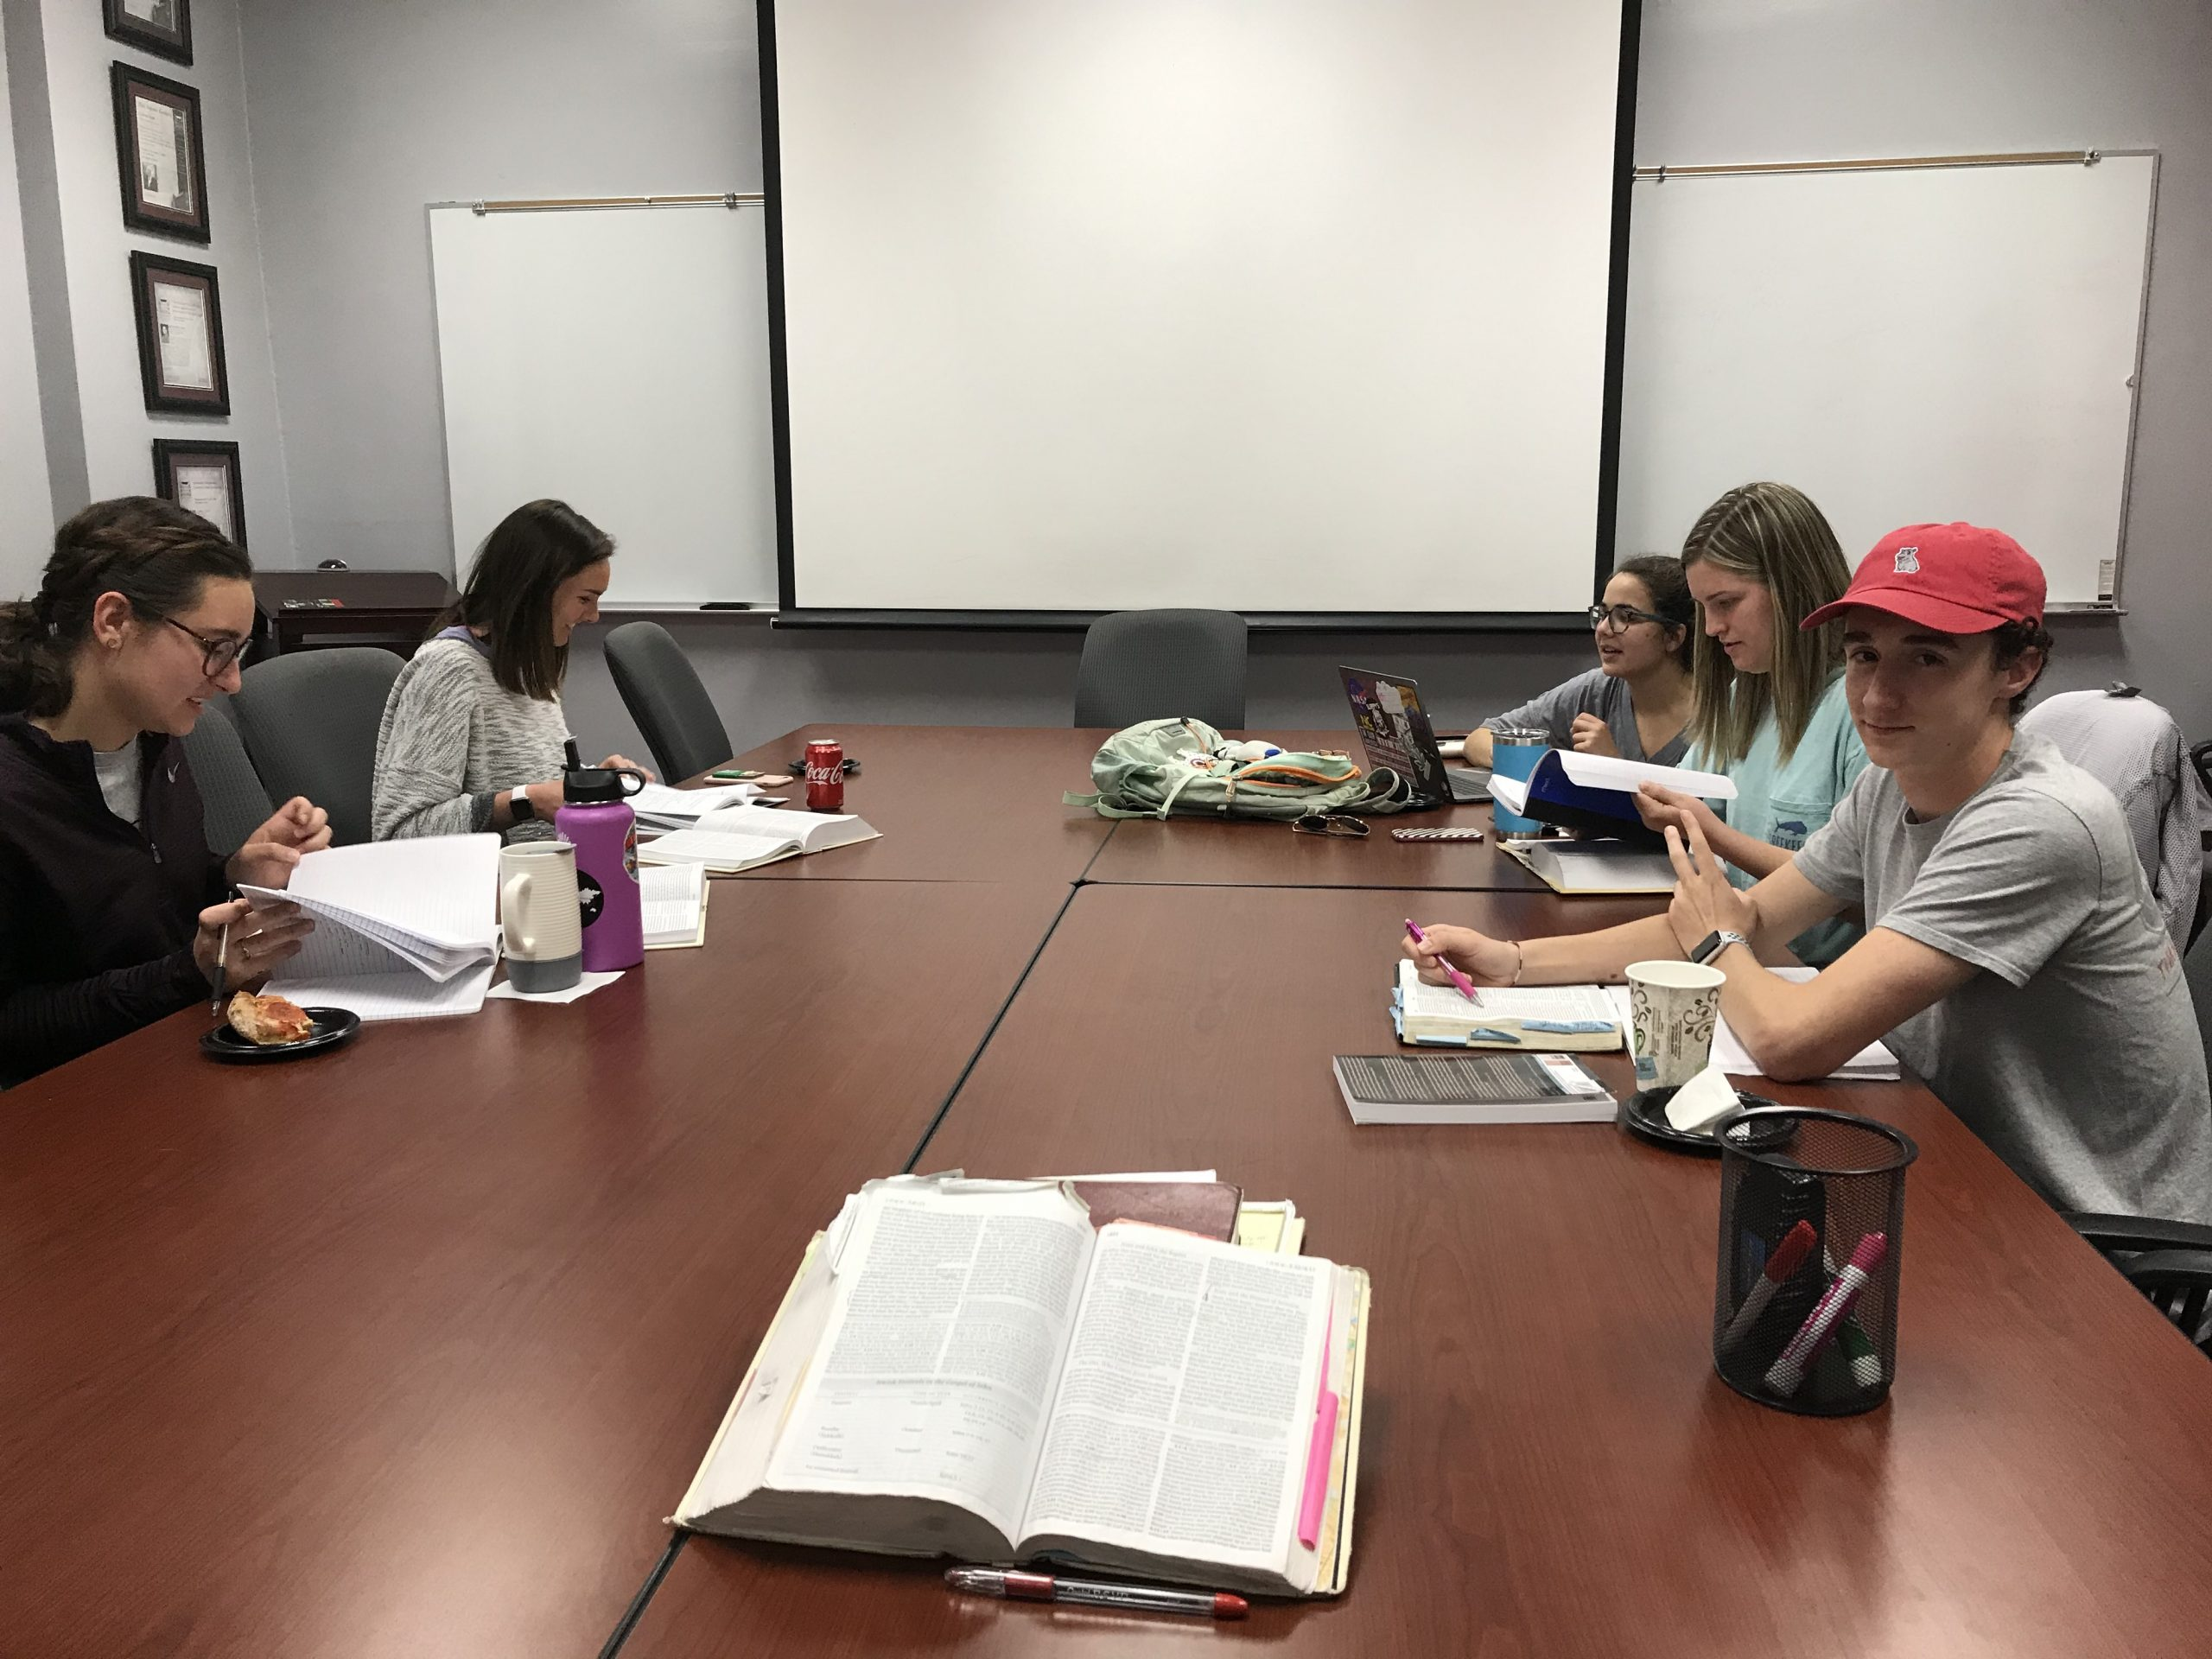 Students reading the Bible and eating pizza in a seminar room.